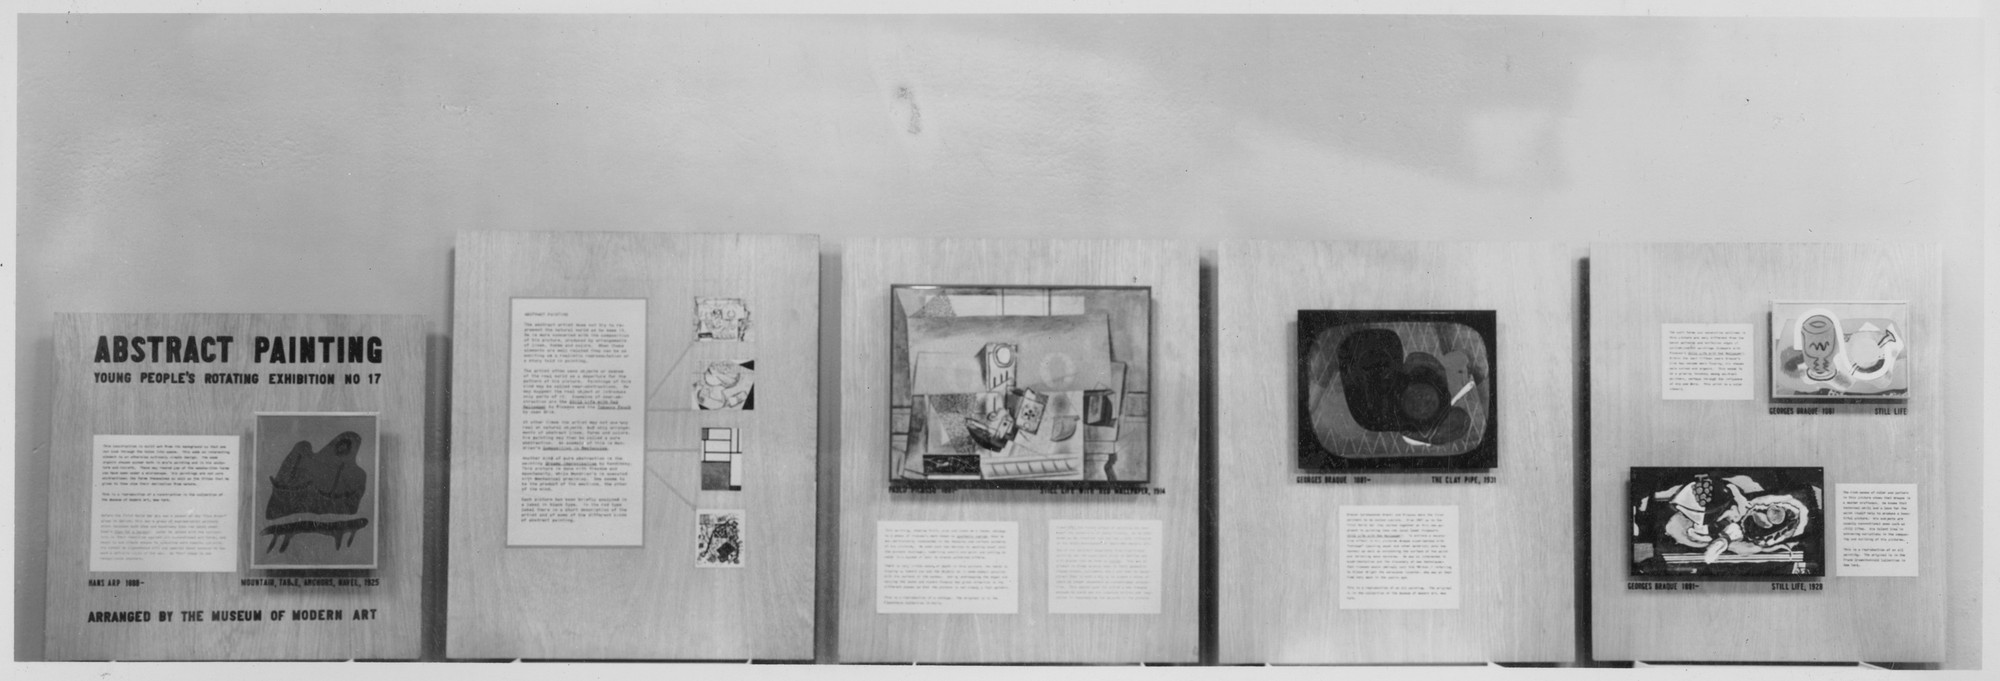 "Installation view of the exhibition, ""Abstract Painting: Shapes of Things."" July 15, 1941–July 28, 1941. Photographic Archive. The Museum of Modern Art Archives, New York. IN137.1. Photograph by Soichi Sunami."